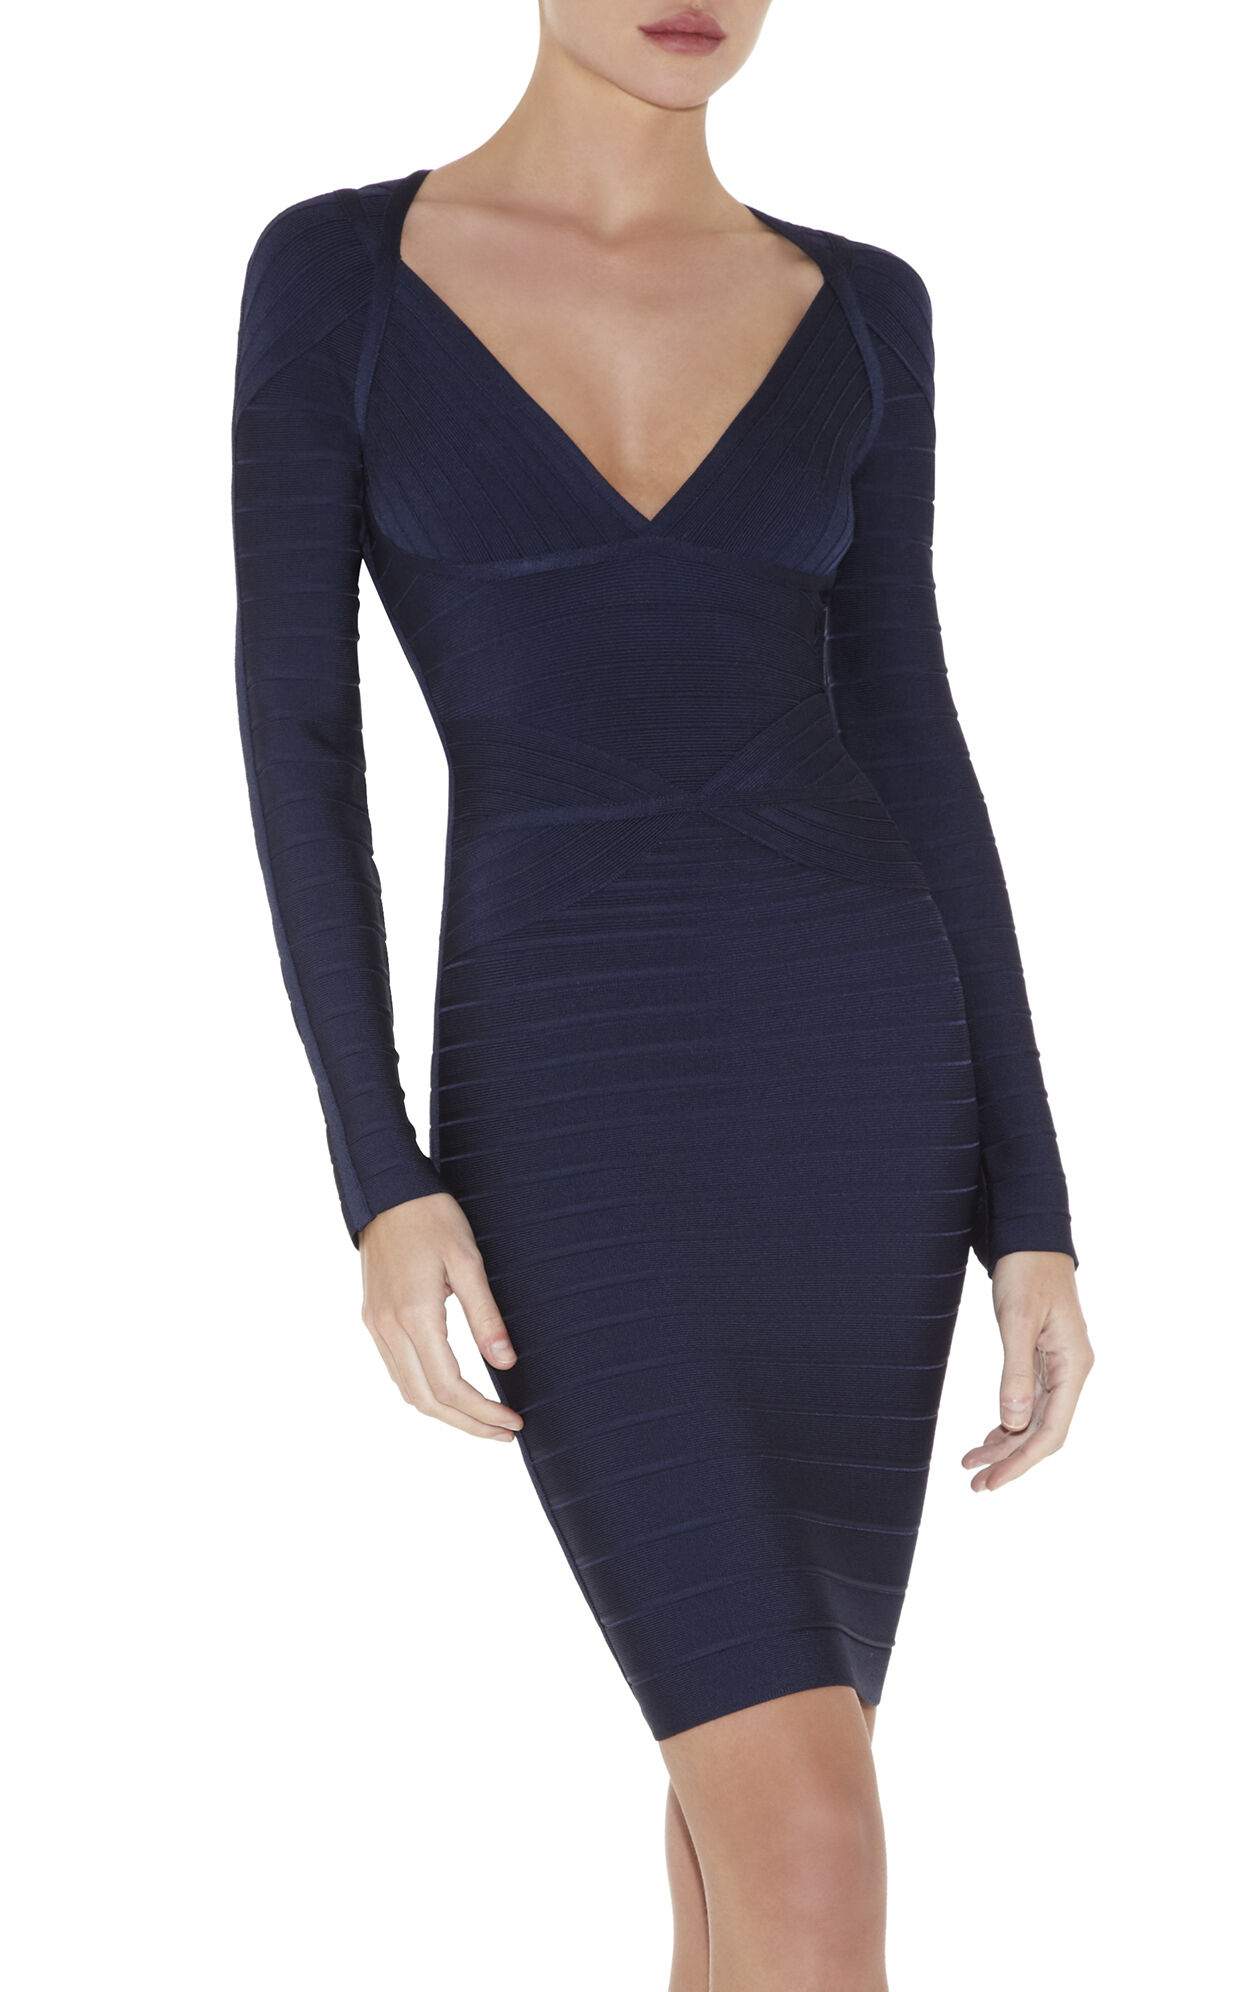 Florencia Signature Bandage Dress